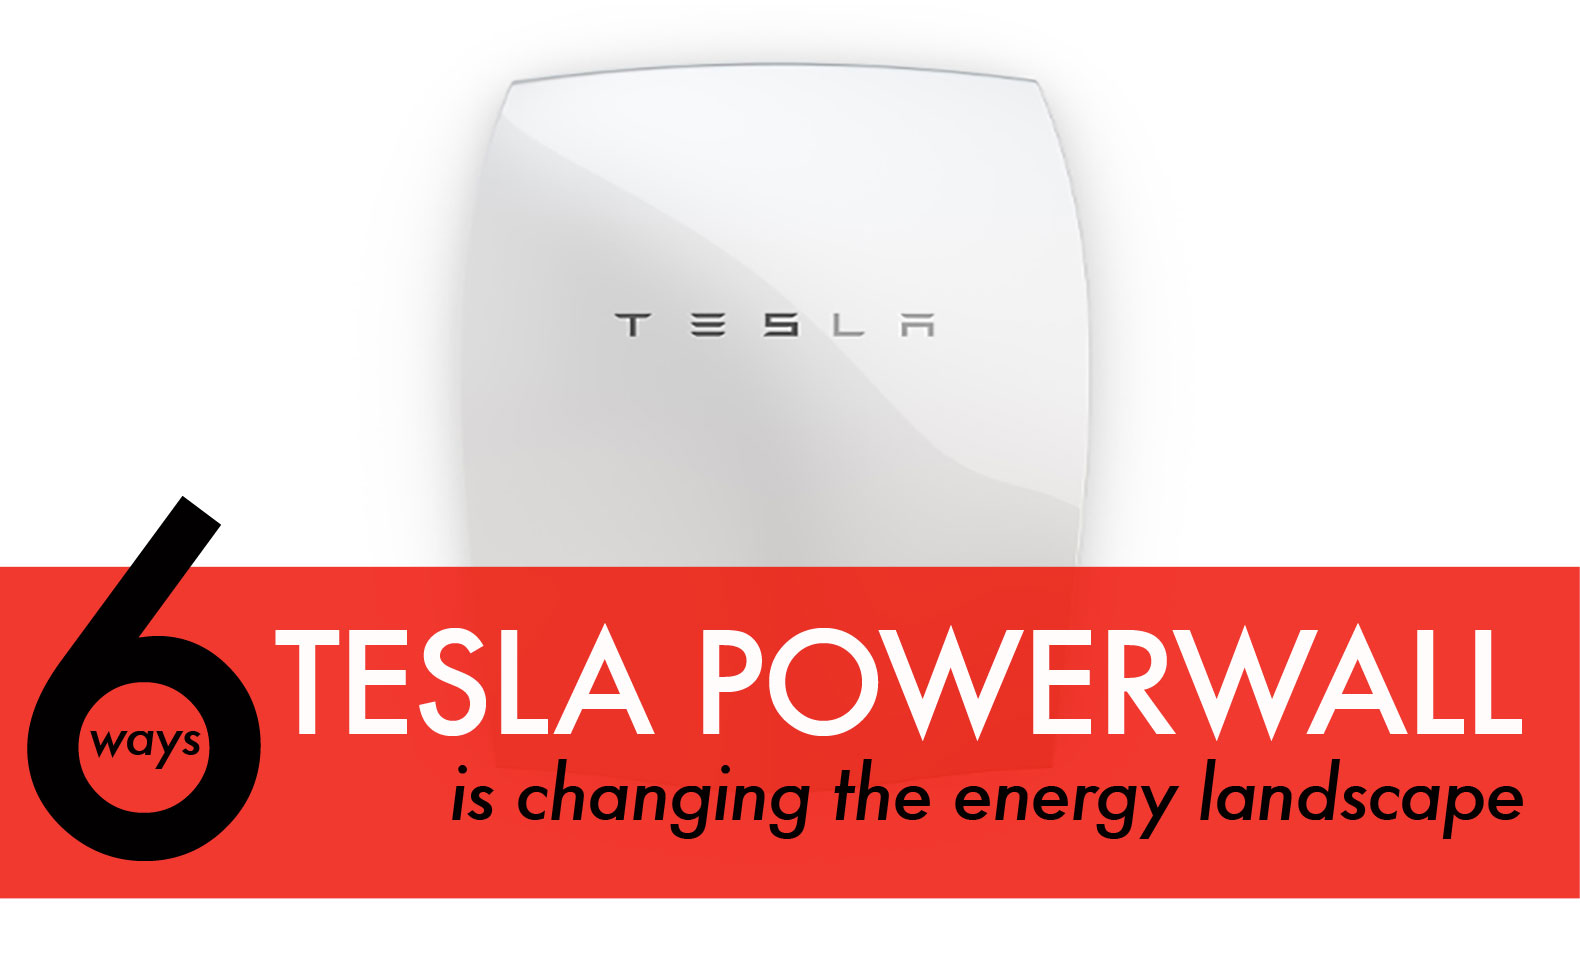 6 ways the Tesla Powerwall is changing the energy landscape